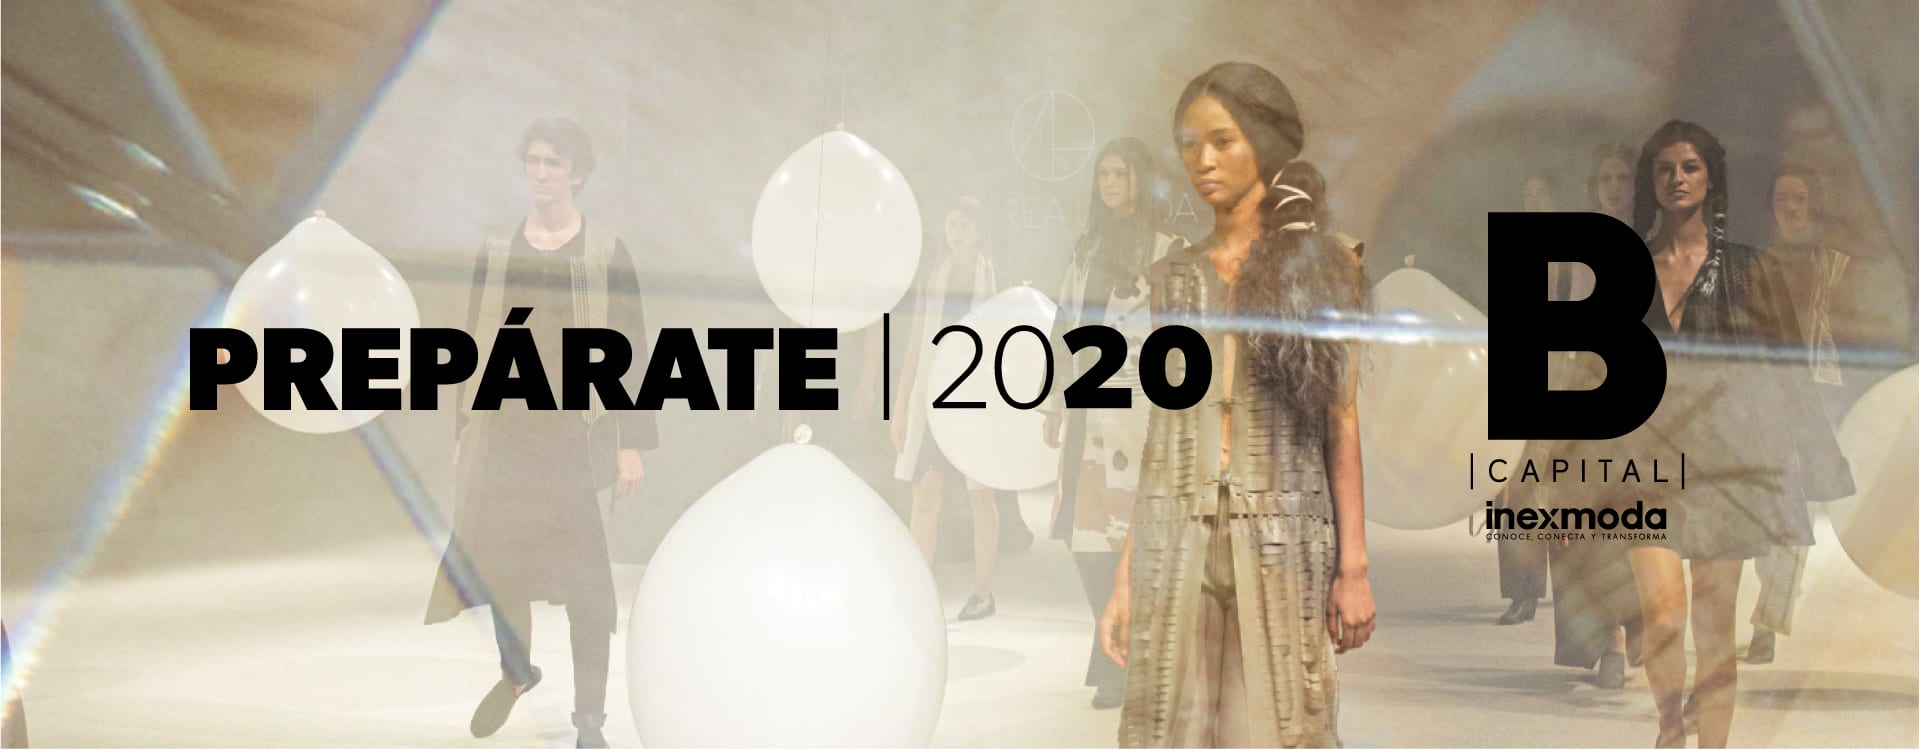 2020 save the date b capital